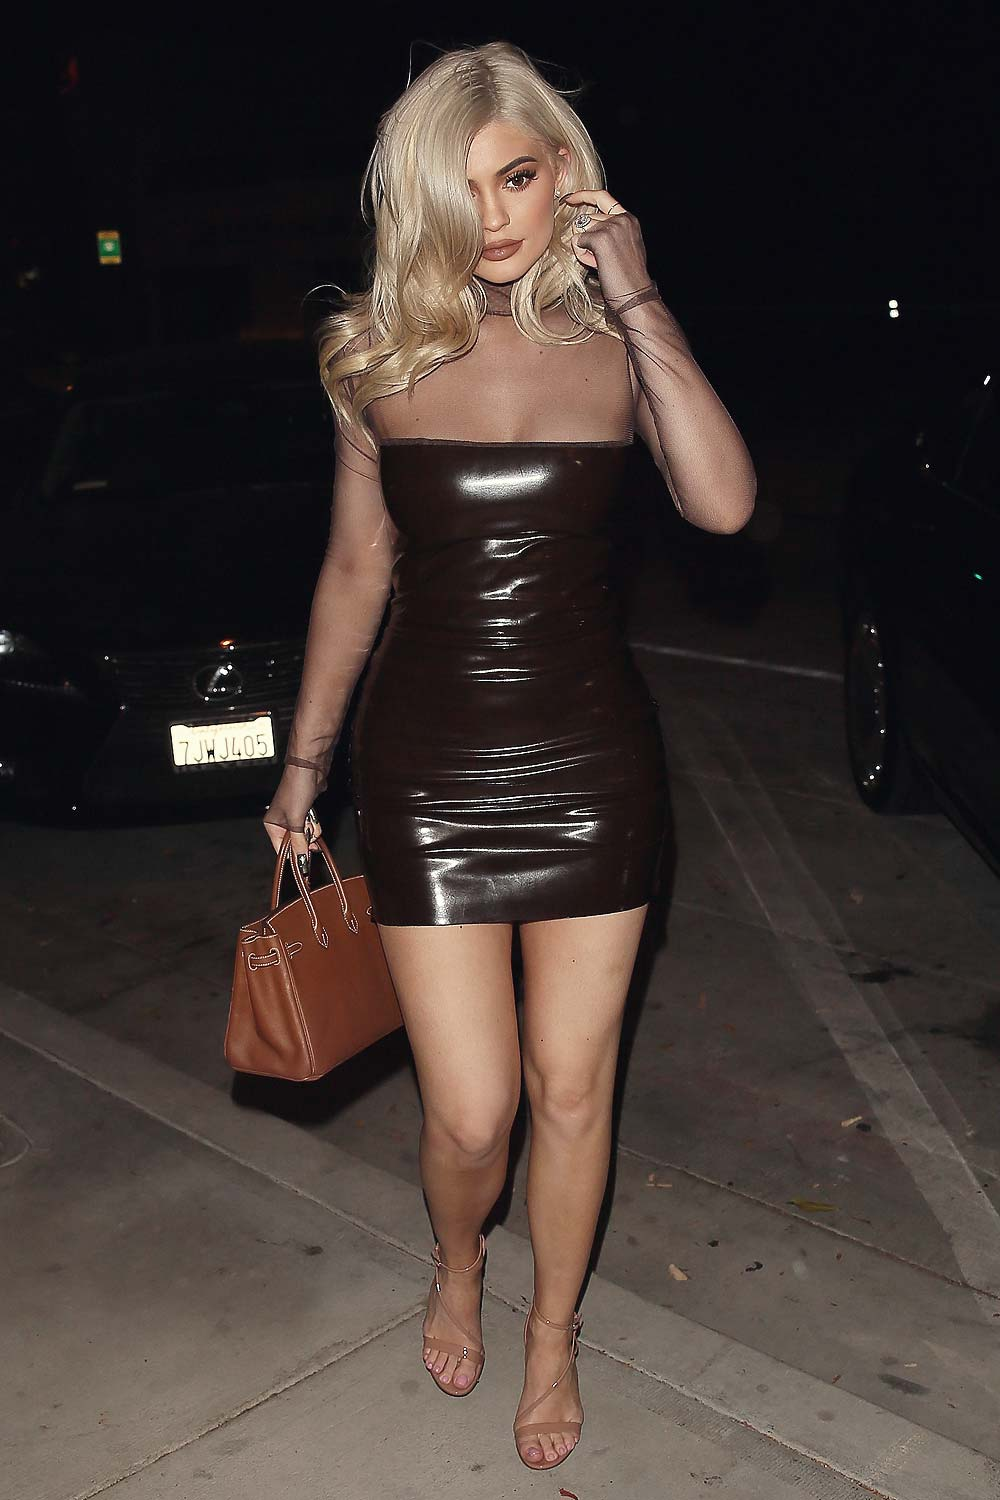 Kylie Jenner at Catch restaurant